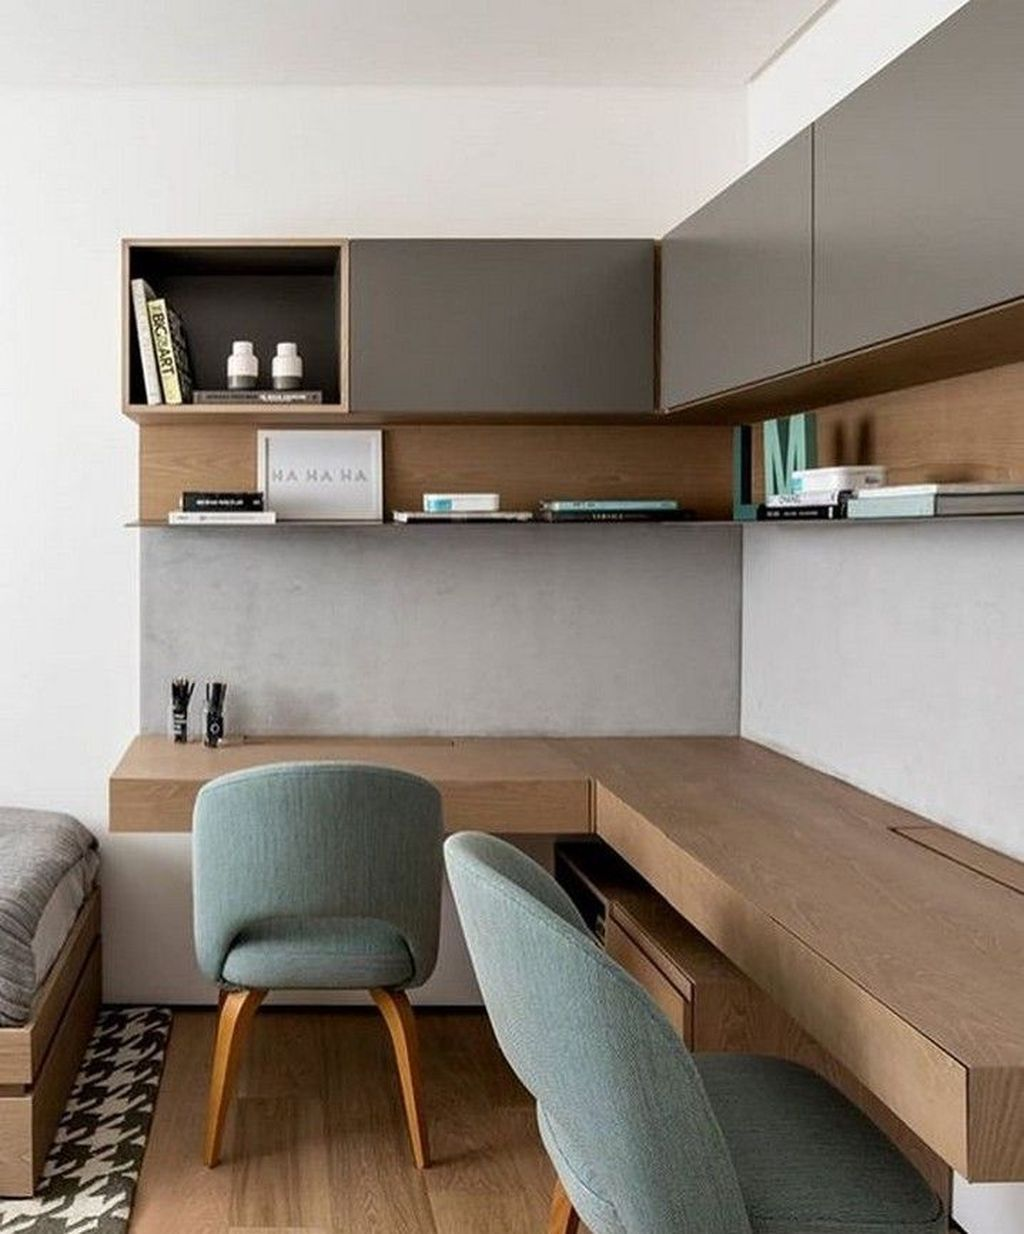 50 Astonishing Small Home Office Design Ideas To Try Asap In 2020 Home Office Furniture Design Small Home Office Furniture Office Furniture Design